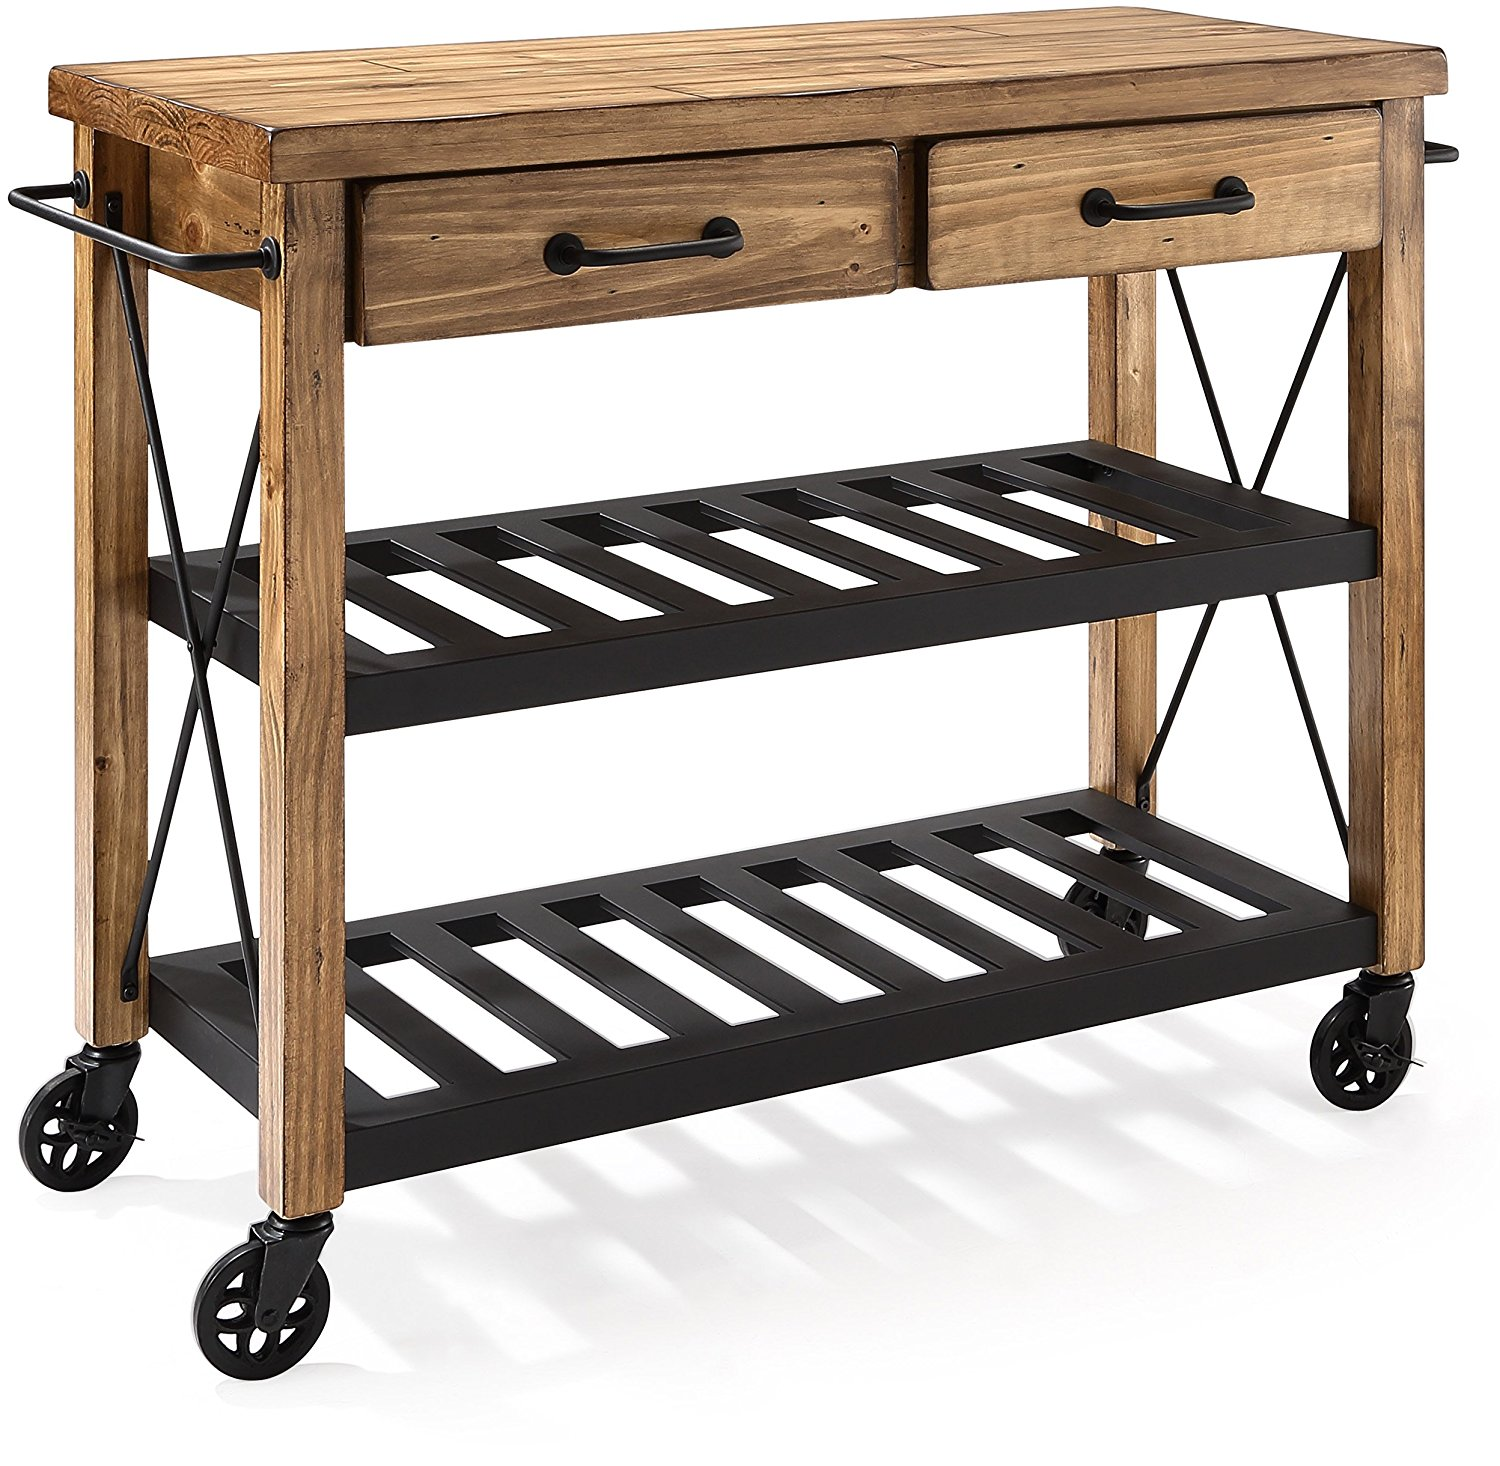 Crosley Roots Rack Industrial Kitchen Cart: Favorite Finds